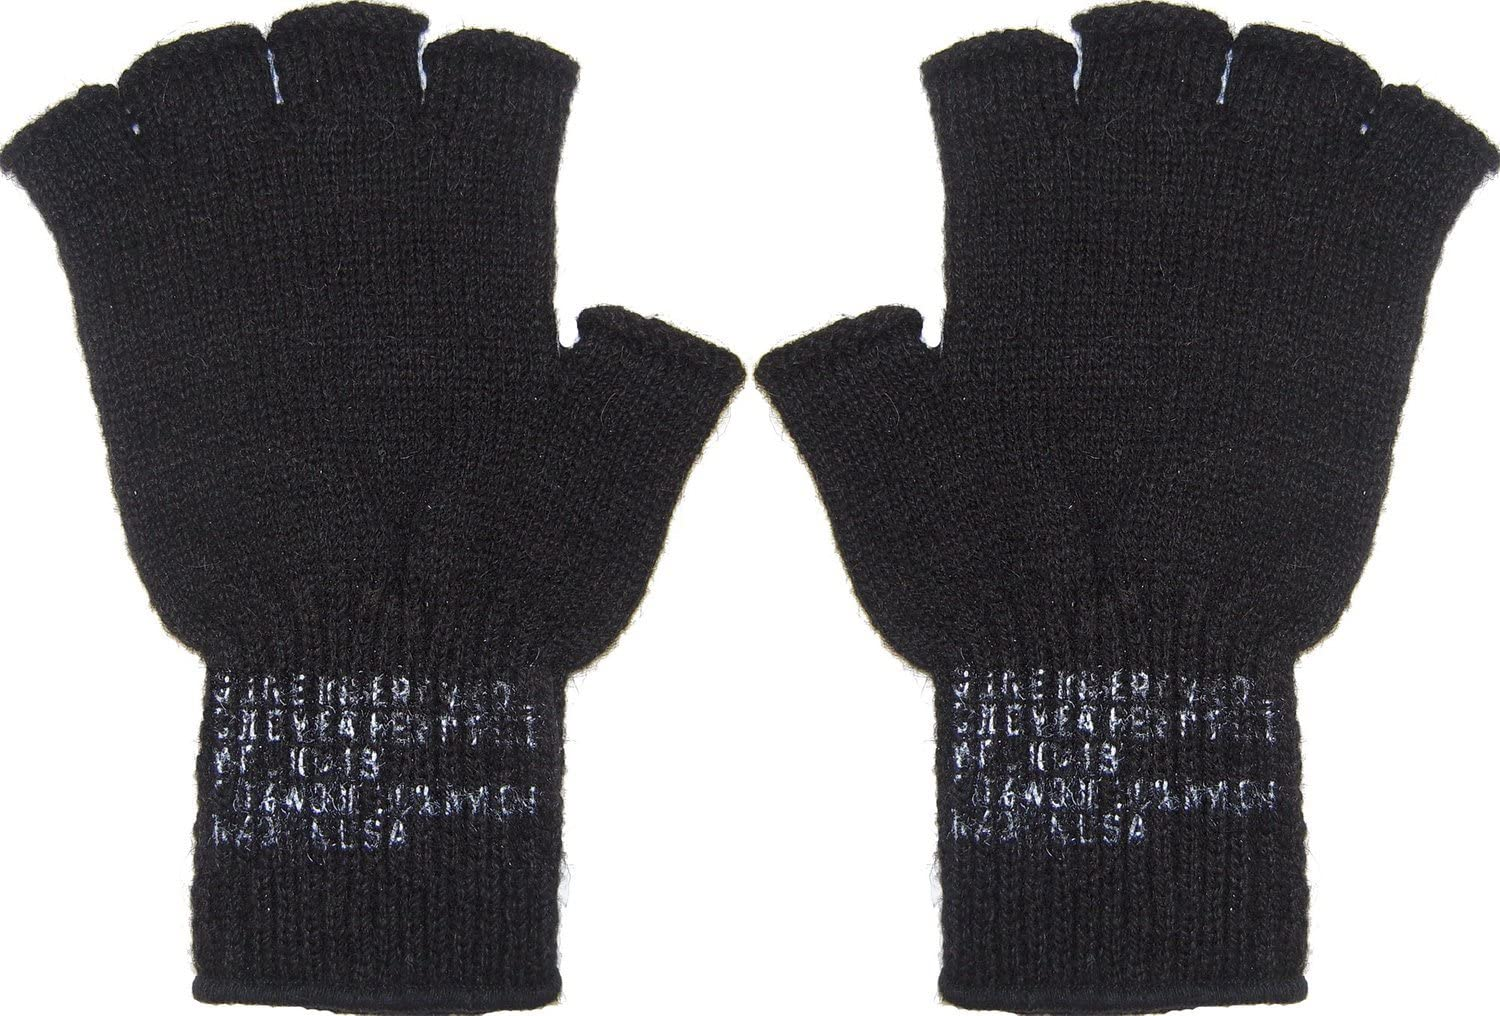 Army Universe Fingerless Wool Gloves Genuine GI Military Cold Weather Type II Inserts Tactical Liners - USA Made